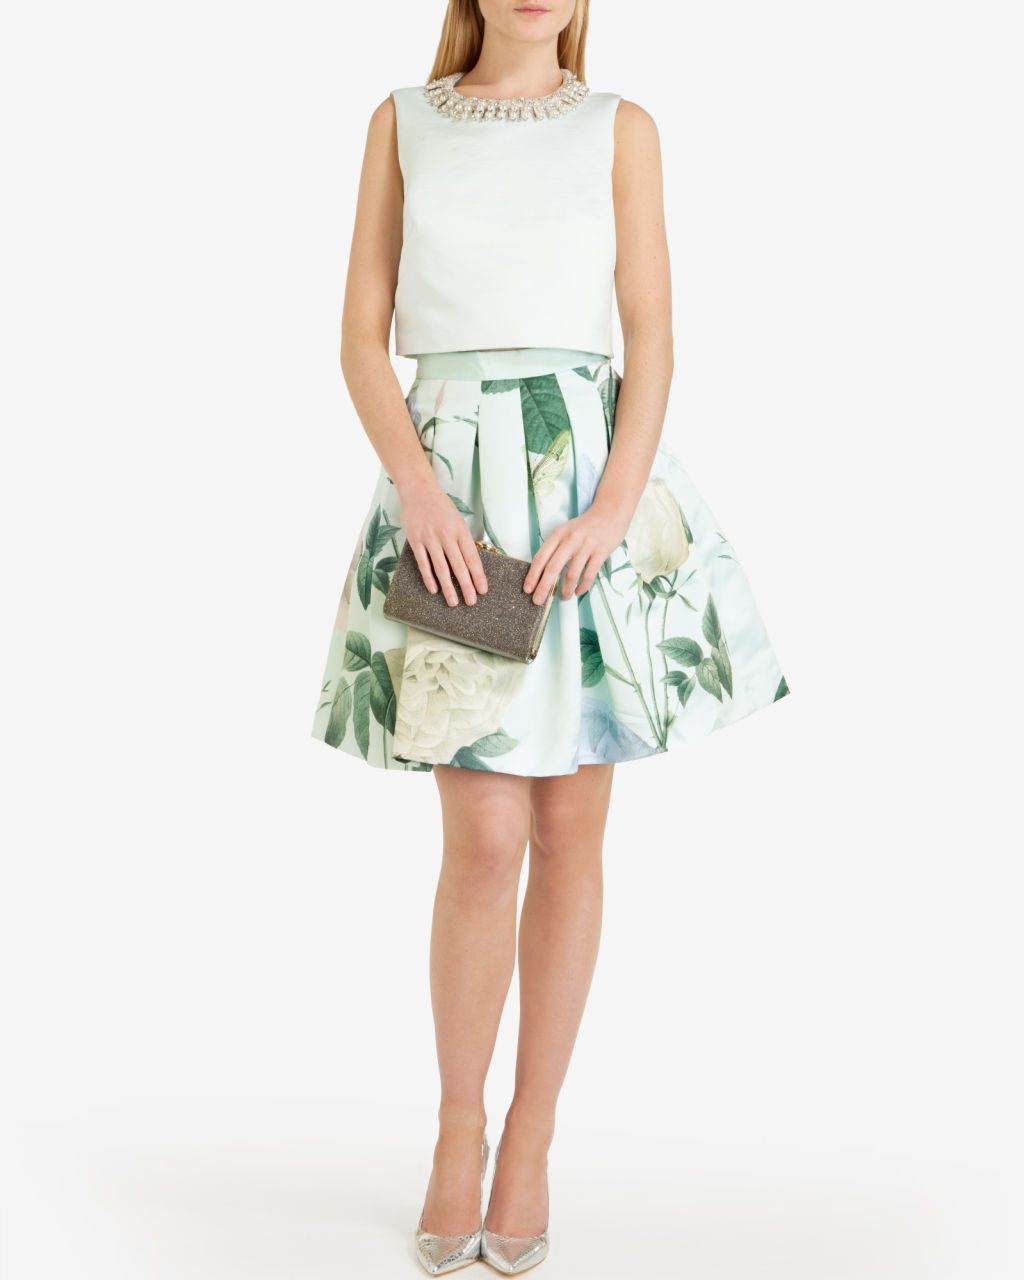 Pleated distinguishing rose skirt - Mint | Skirts & Shorts | Ted Baker